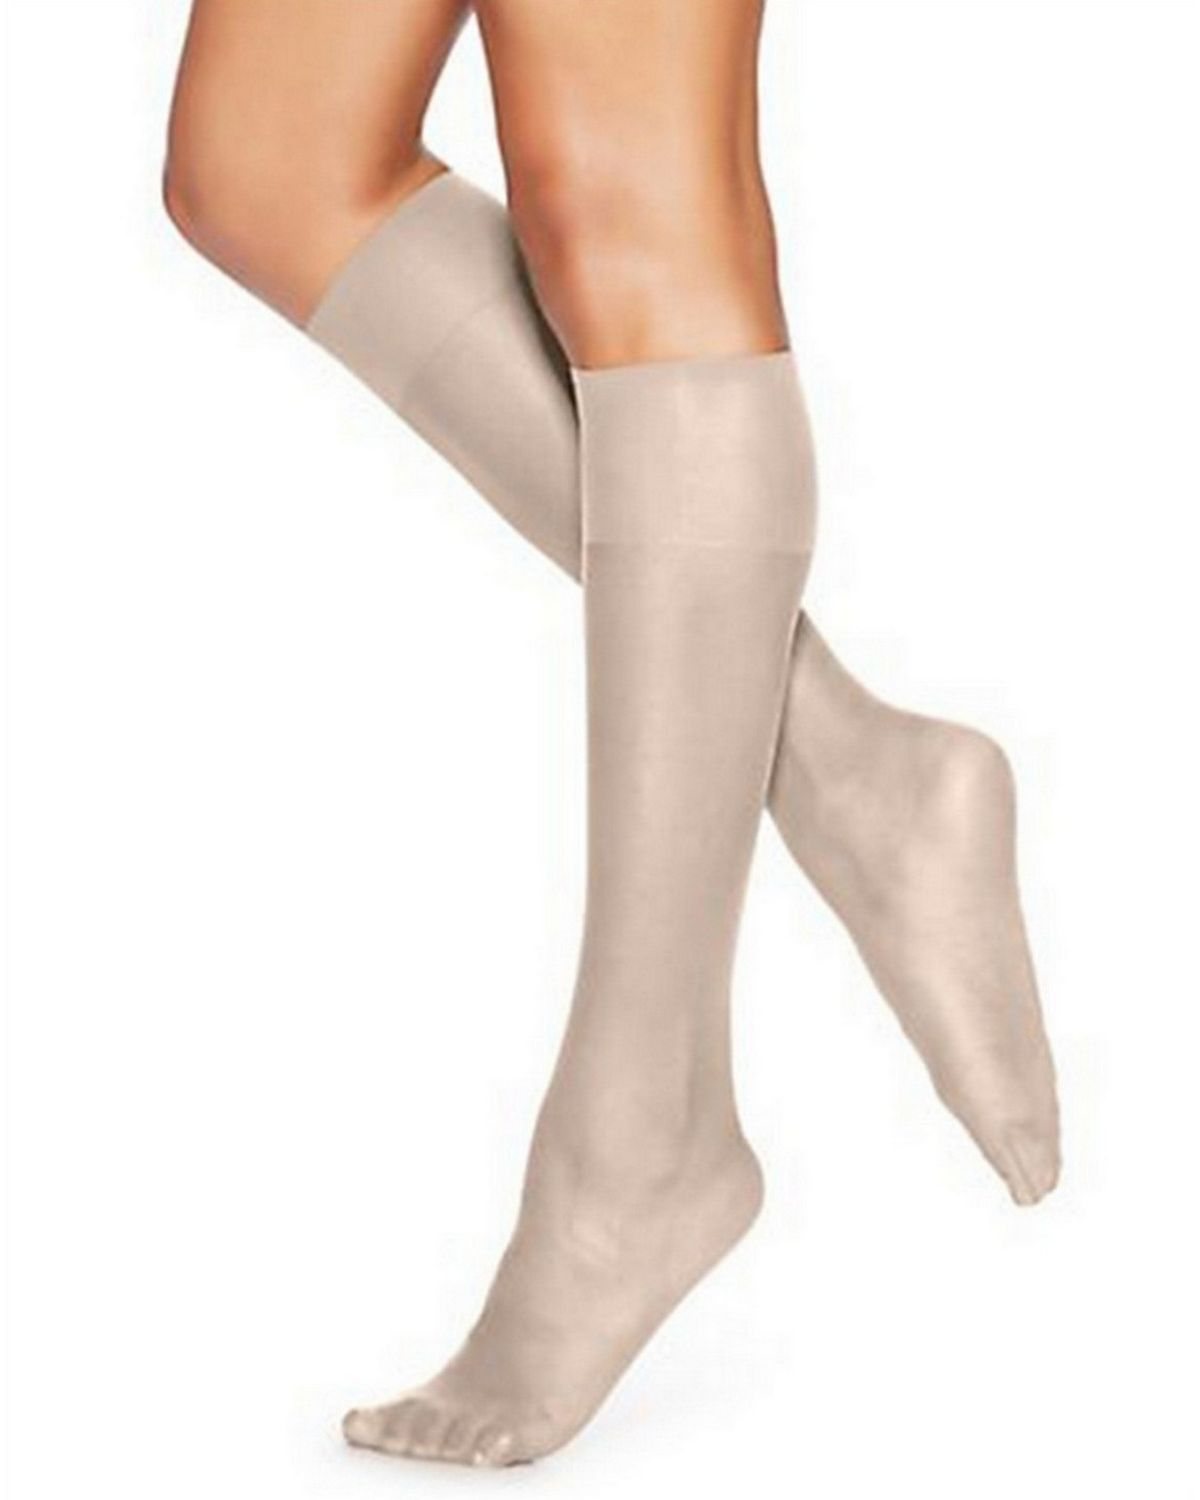 Hanes 725 Women's Silk Reflections Silky Sheer Knee Highs 2-Pack - Pearl - One Size #silk